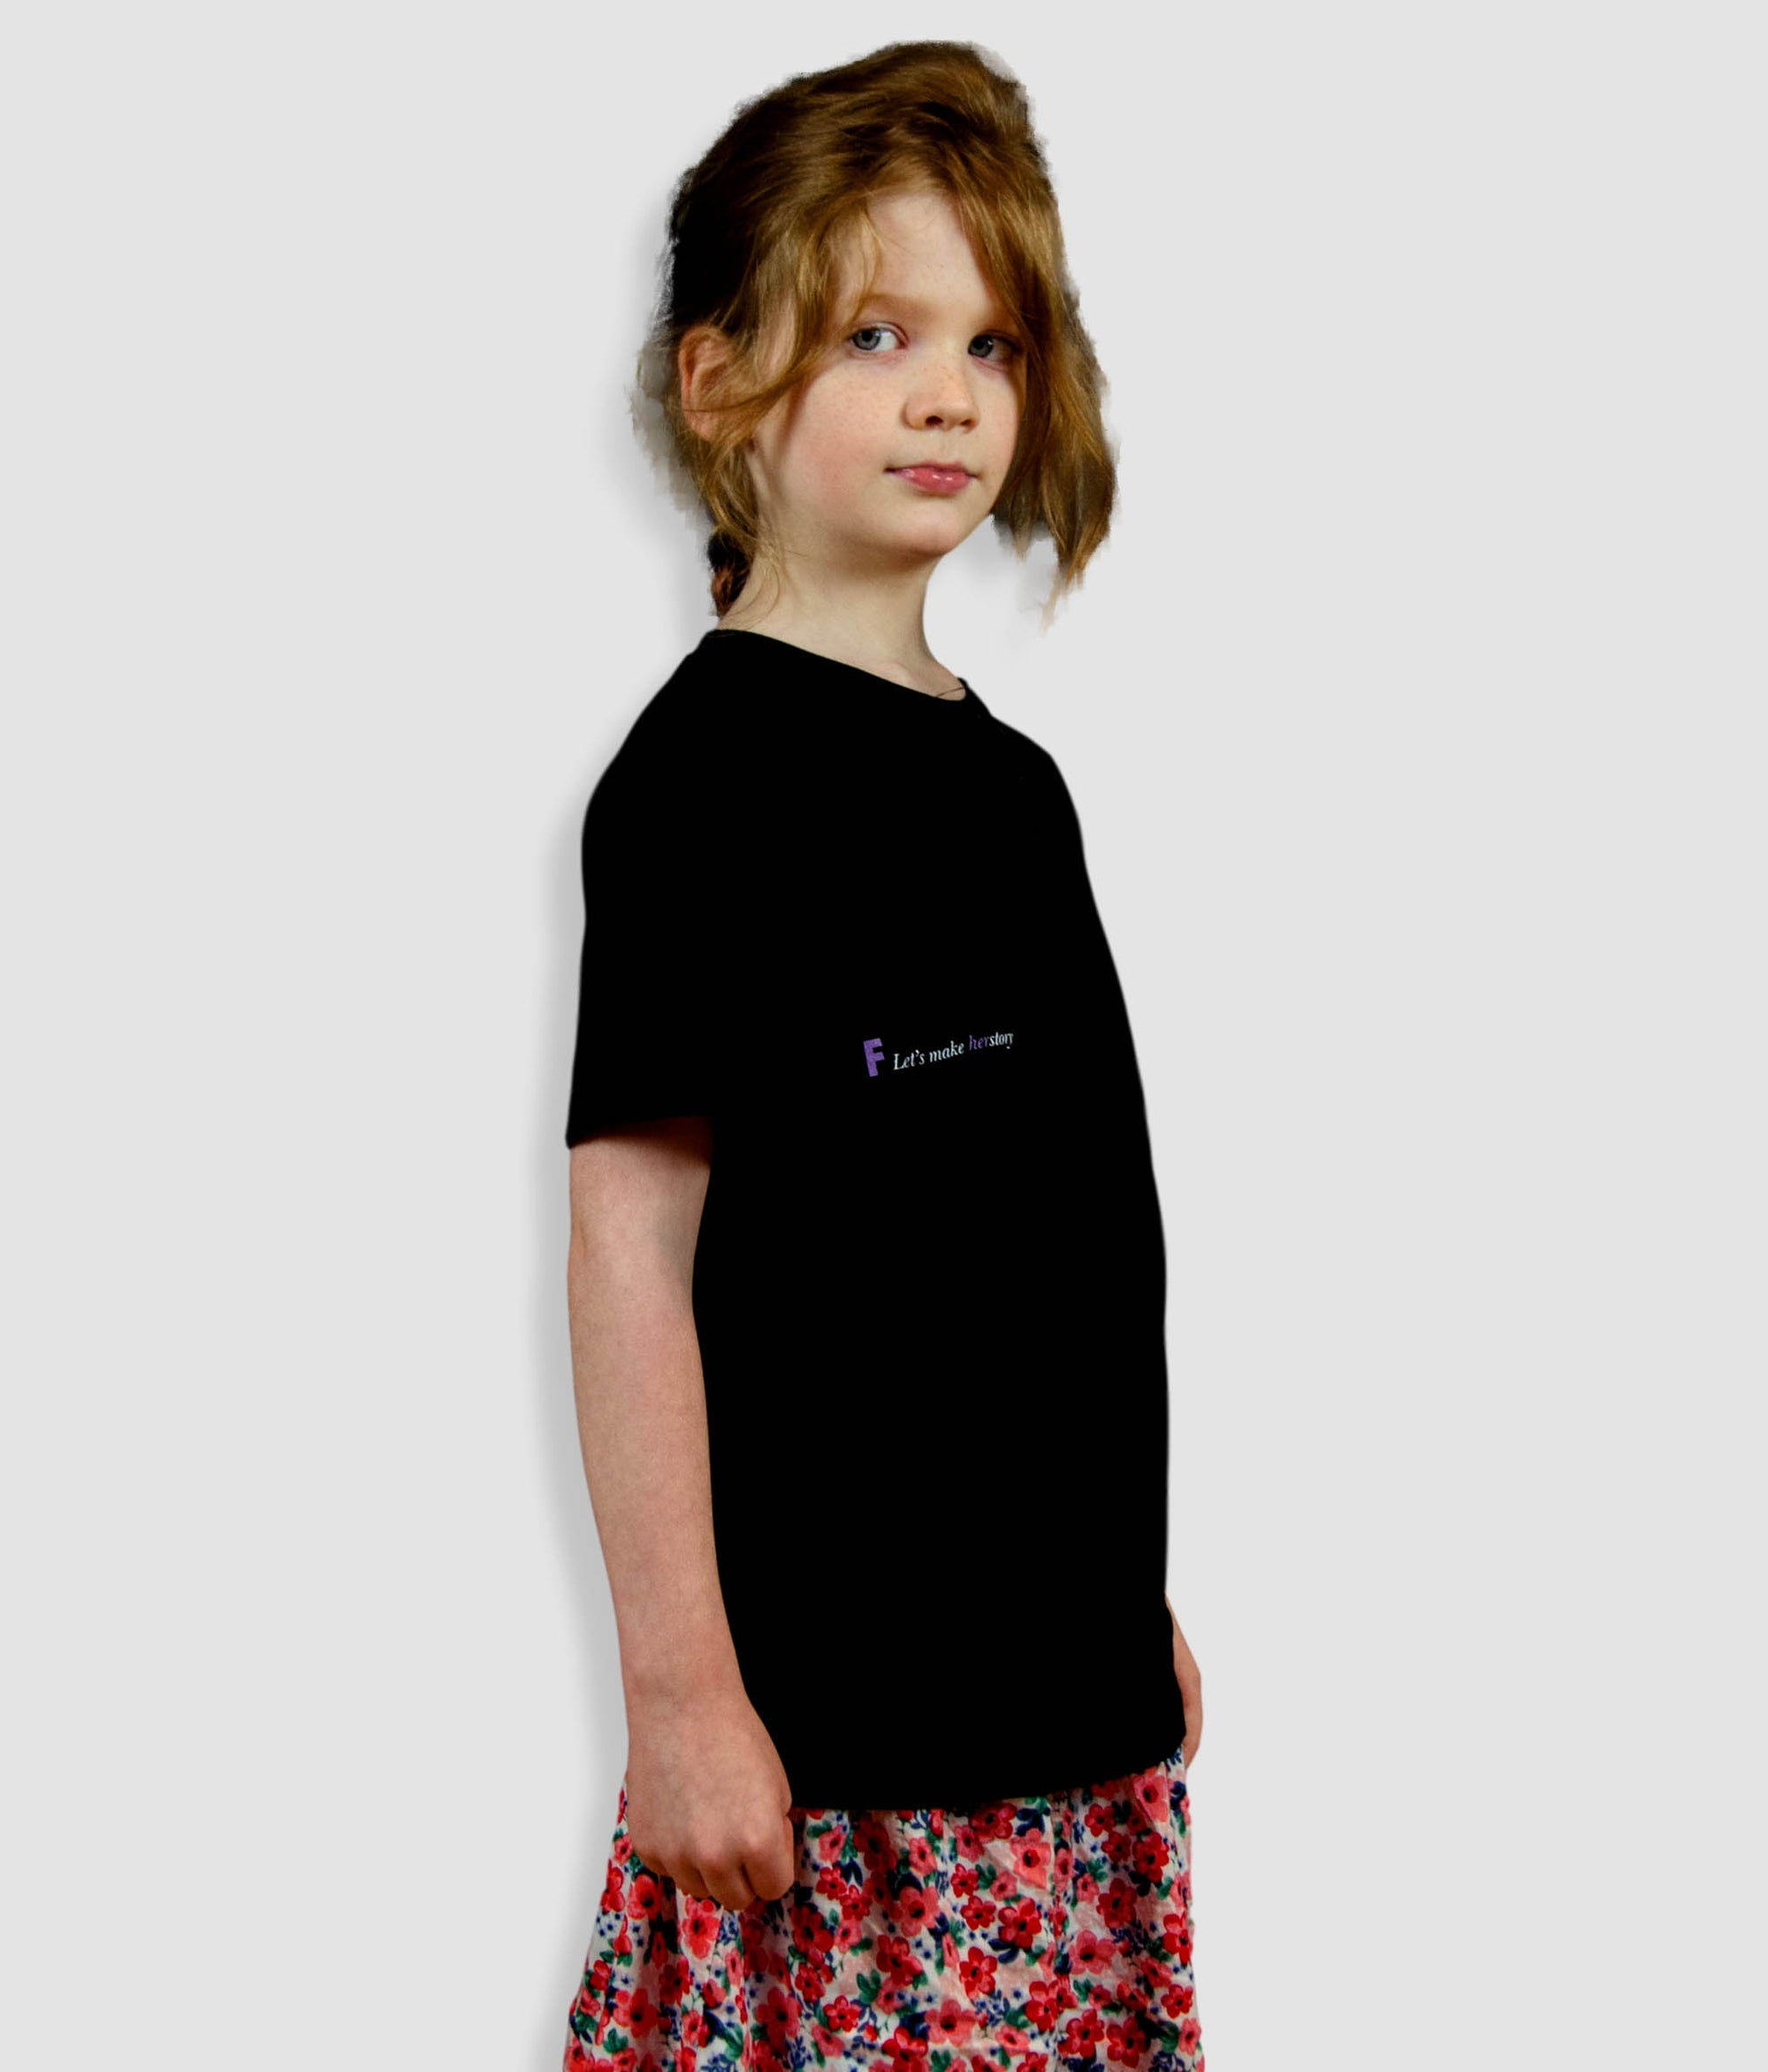 Kids Organic Feminist T Shirt - Let's Make Herstory, Whisperer